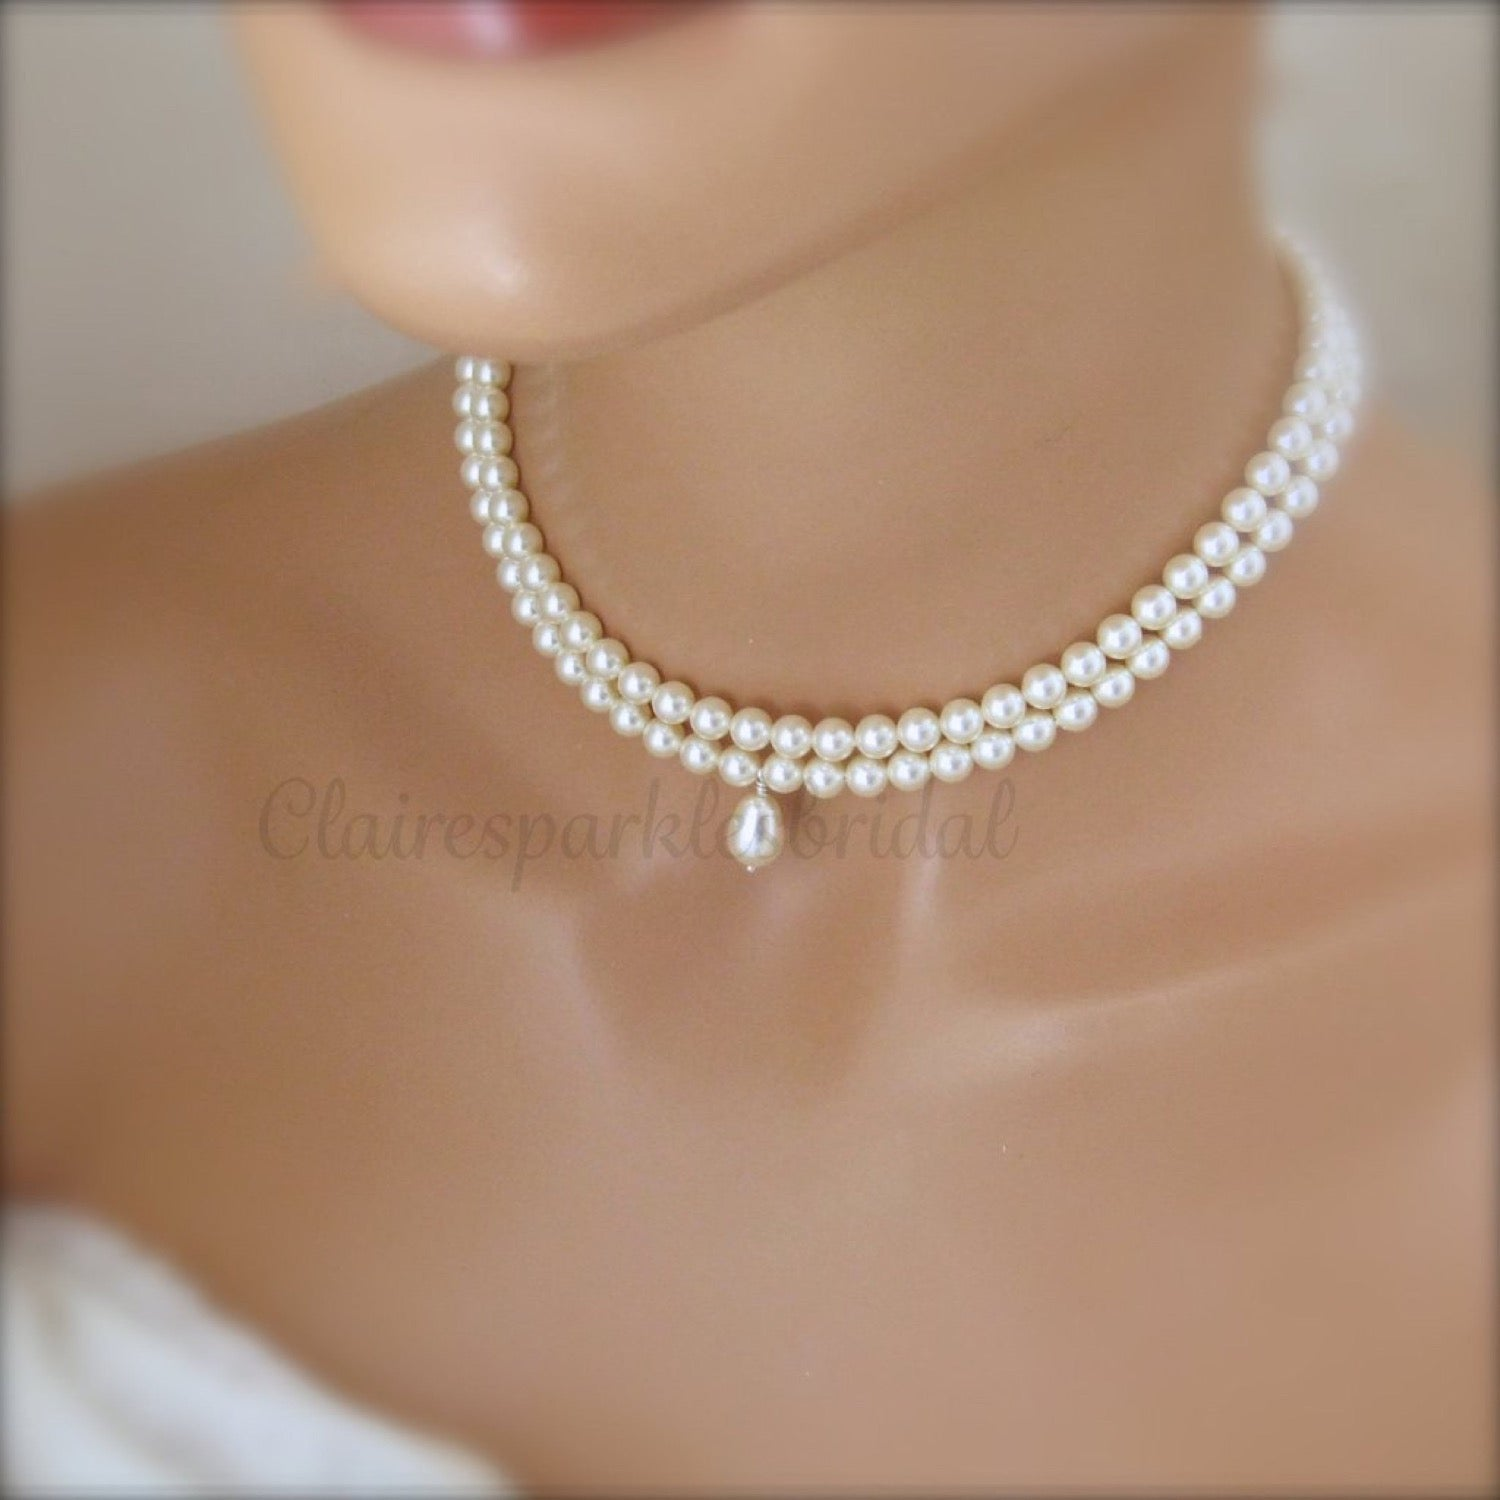 White Pearl Choker Necklace Wedding Jewelry - Clairesbridal - 5